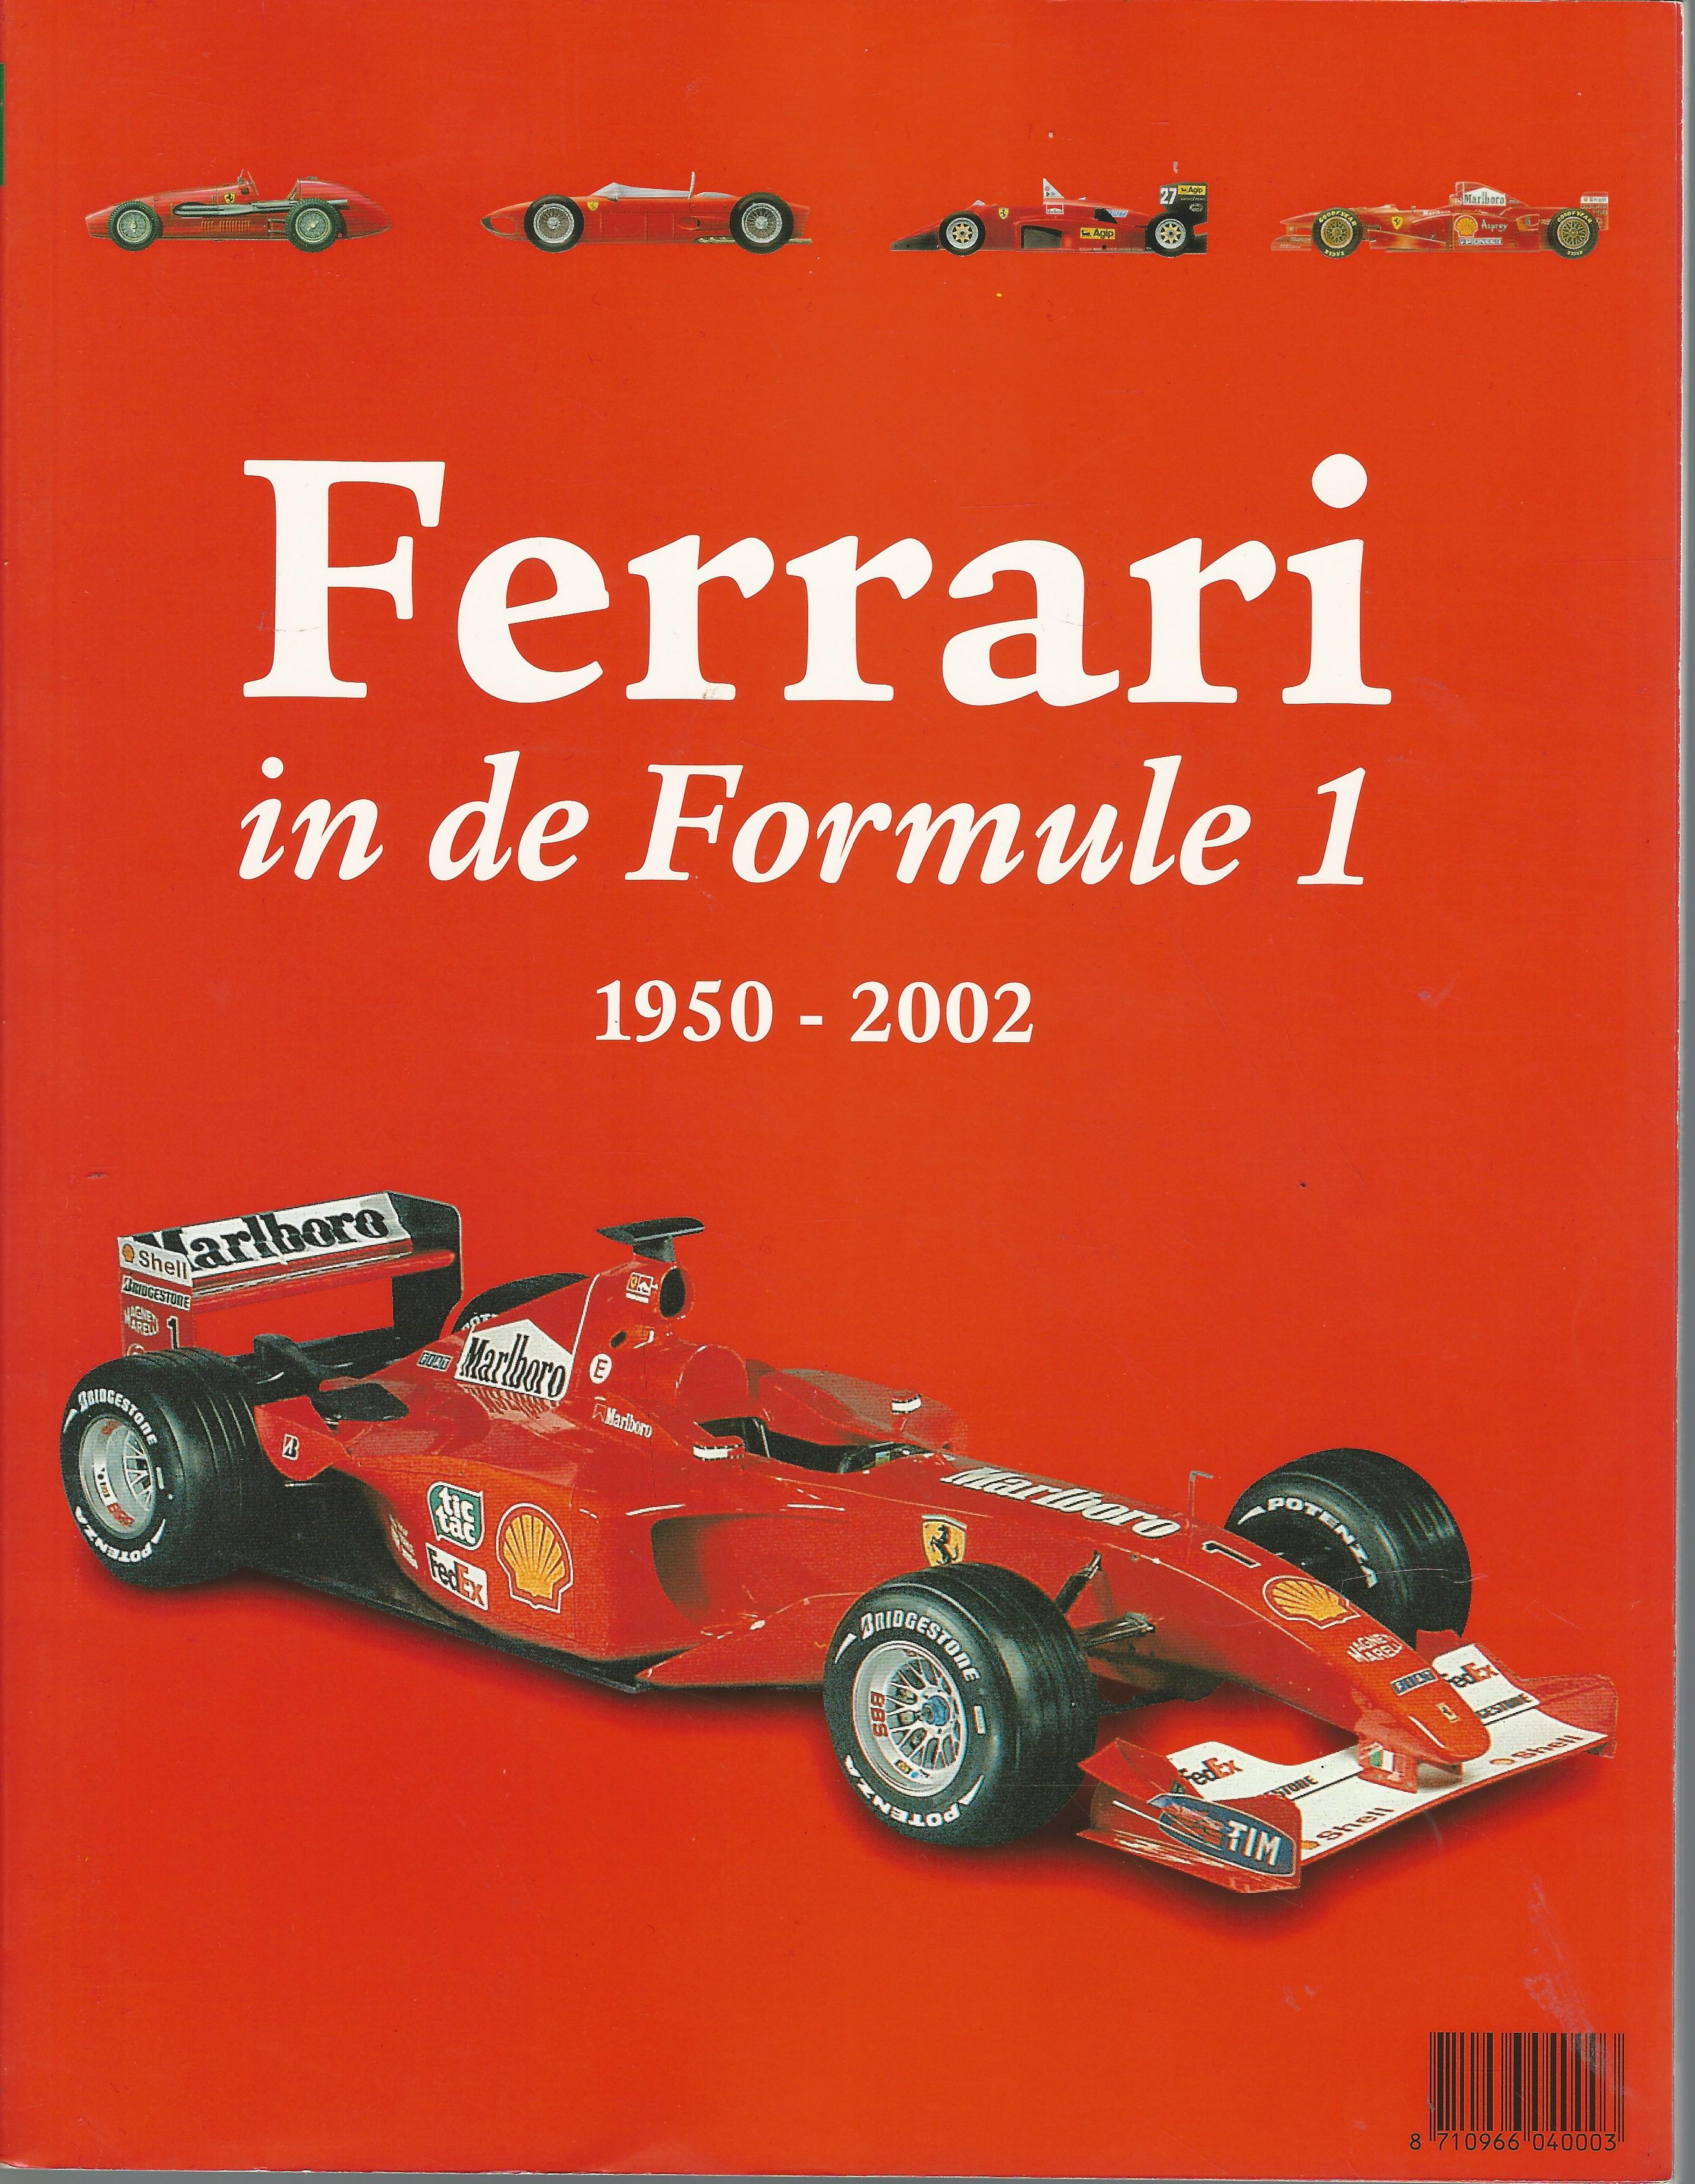 ferrari in de formule 1 1950 2002 onschatbare klassieker. Black Bedroom Furniture Sets. Home Design Ideas